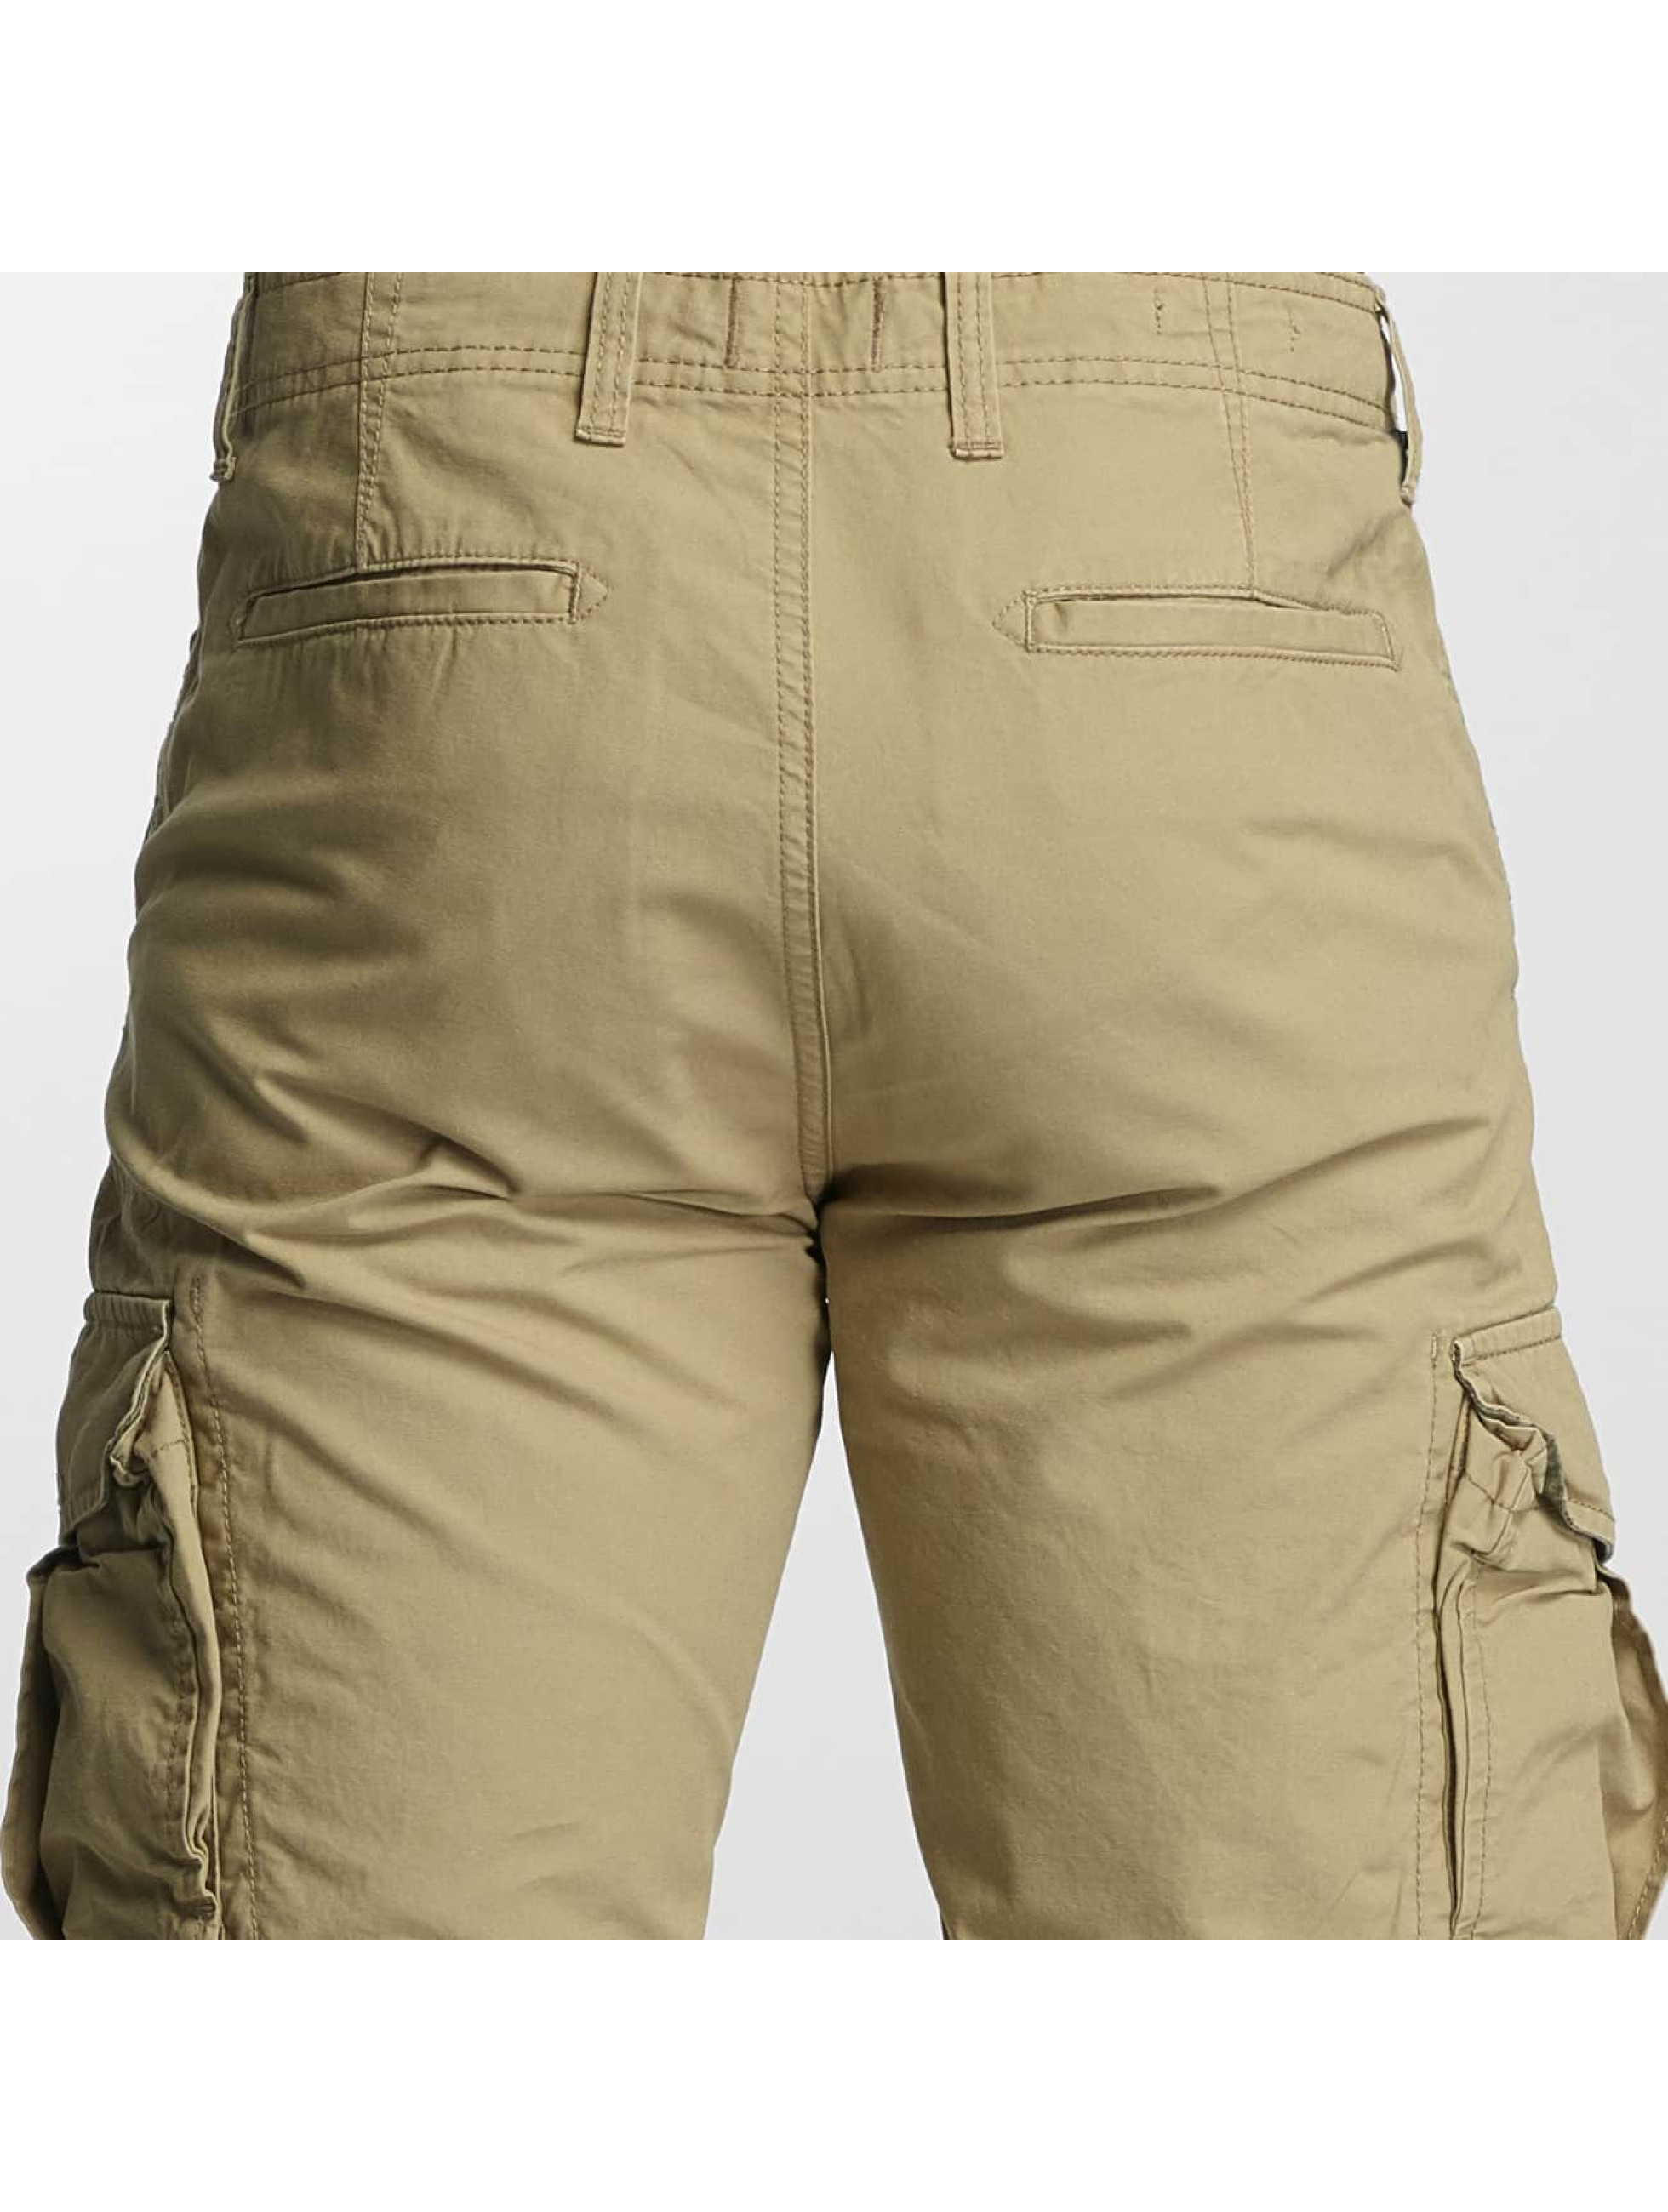 Jack & Jones Short jjiPreston beige